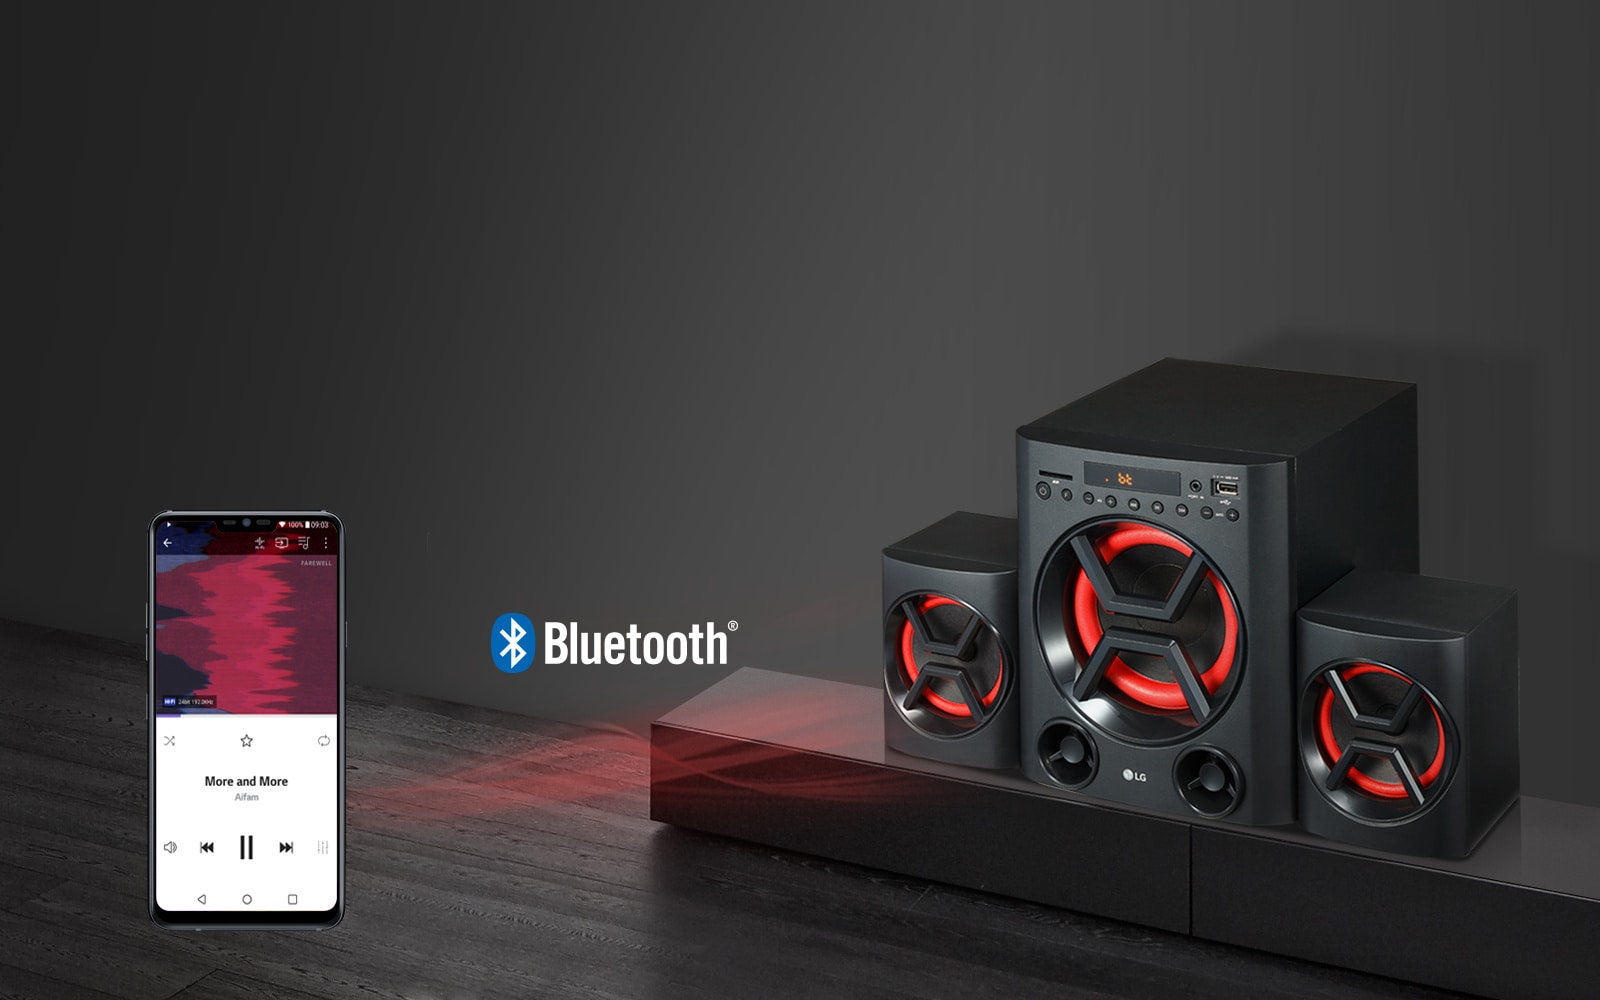 Wireless Audio Streaming via Bluetooth1